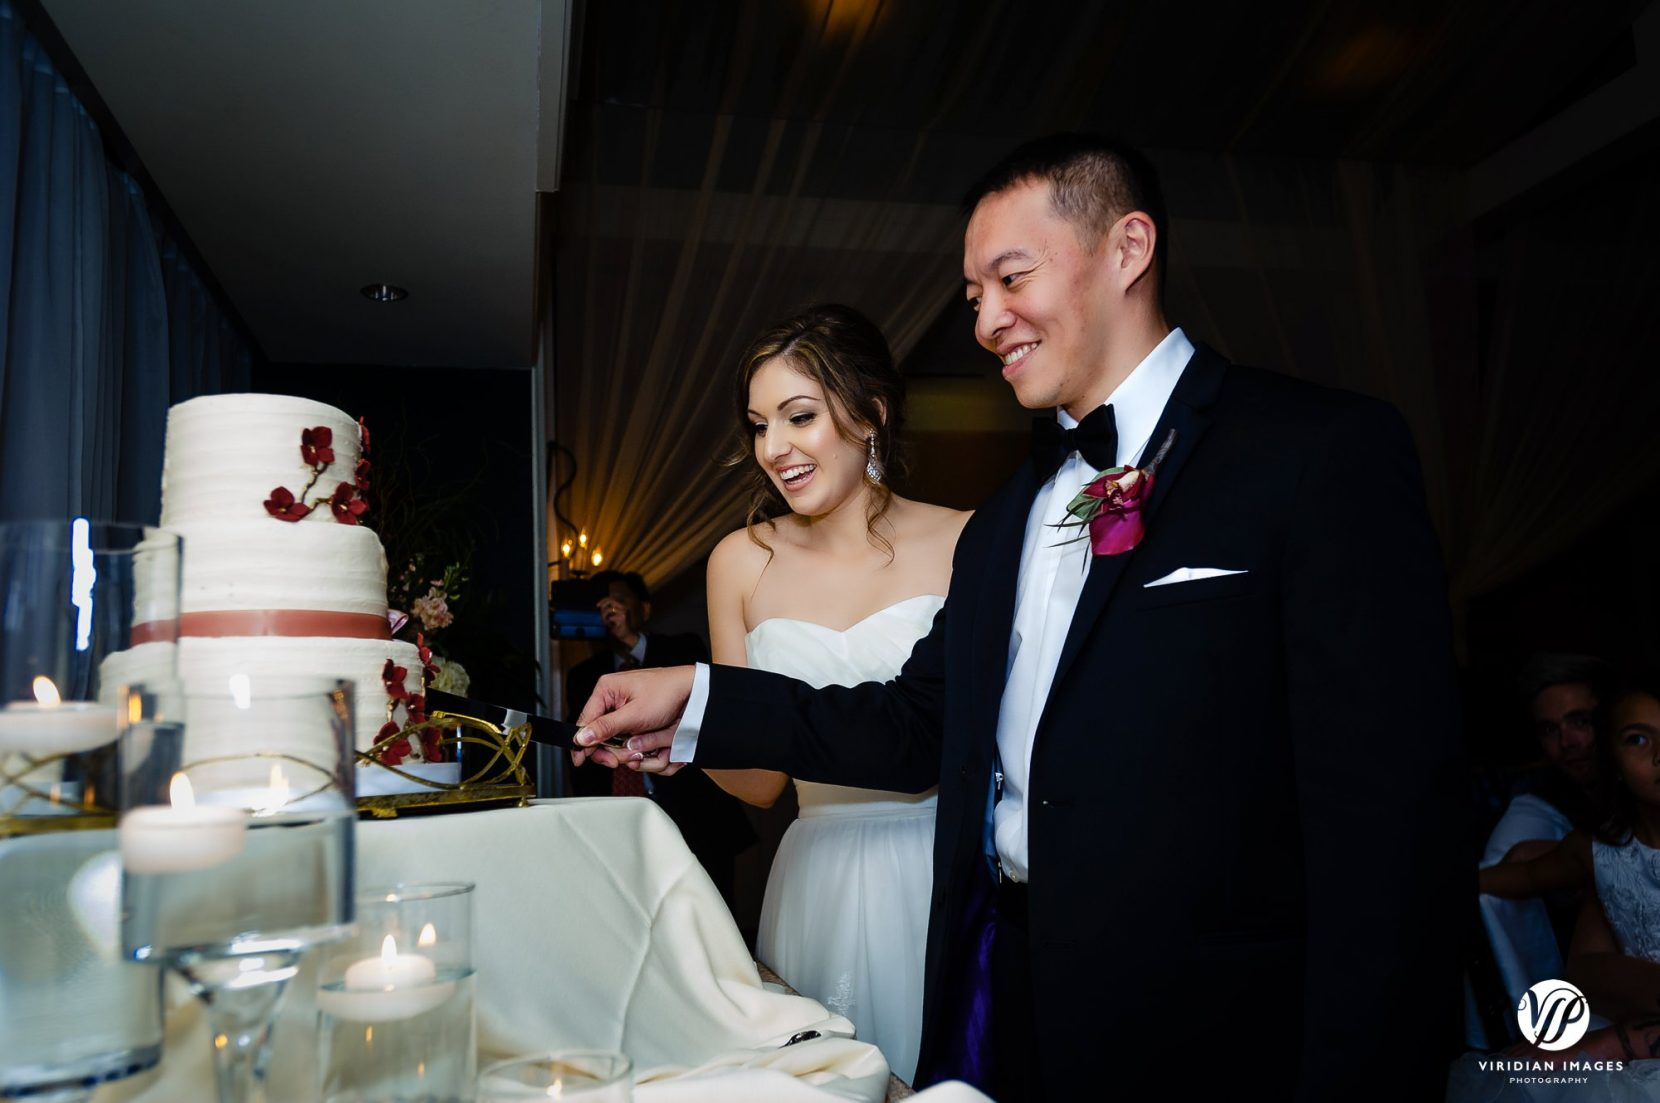 cutting cake during reception